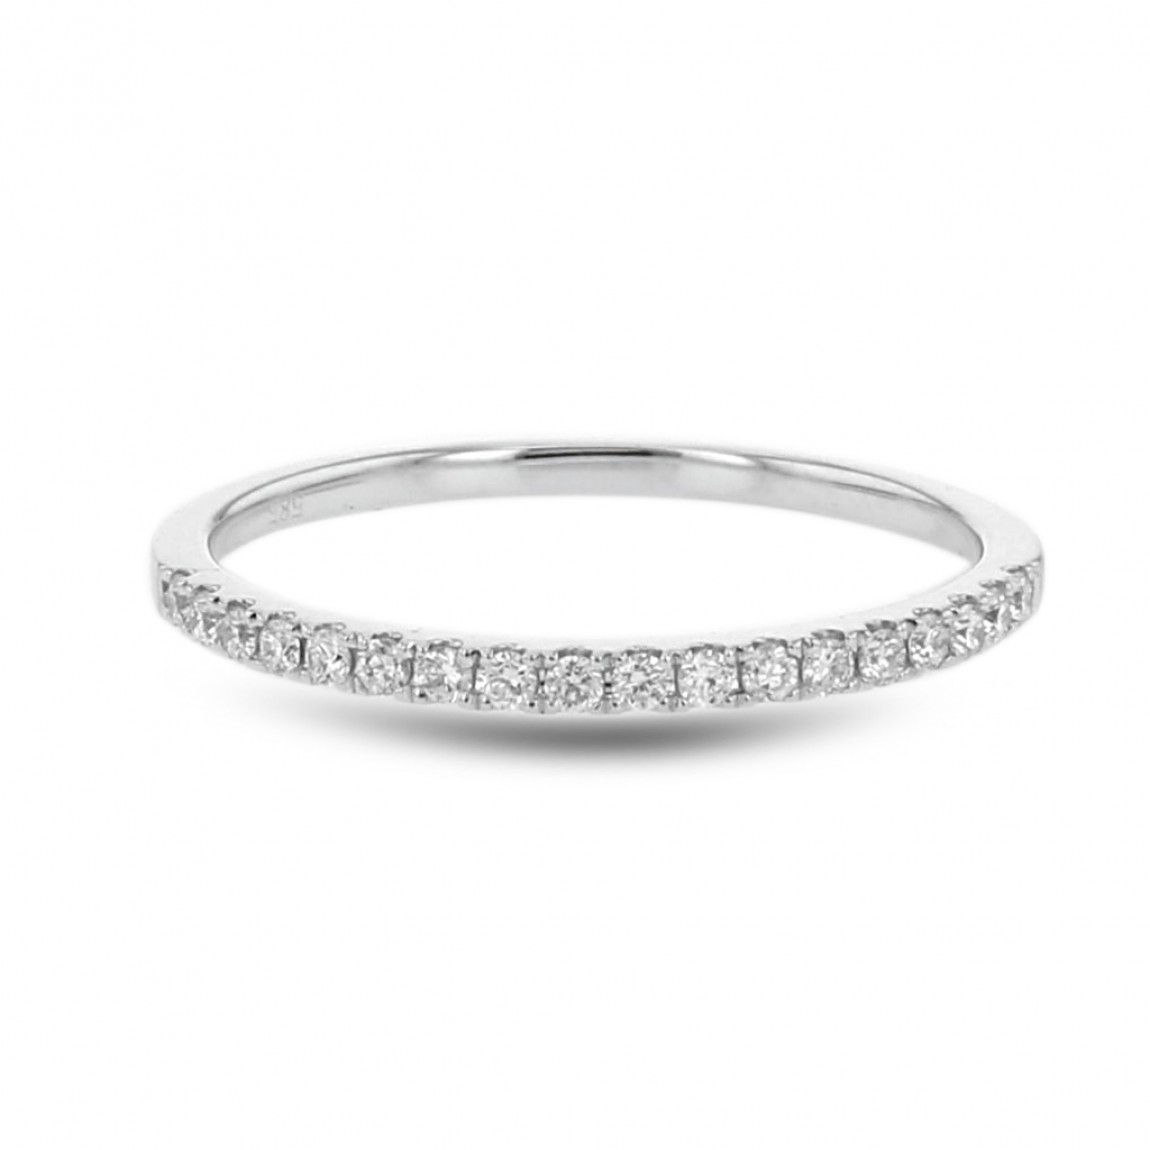 Diamond Wedding Anniversary Band, 14K White Gold, .16Ctw Within Latest Diamond Anniversary Bands In Gold (Gallery 18 of 25)